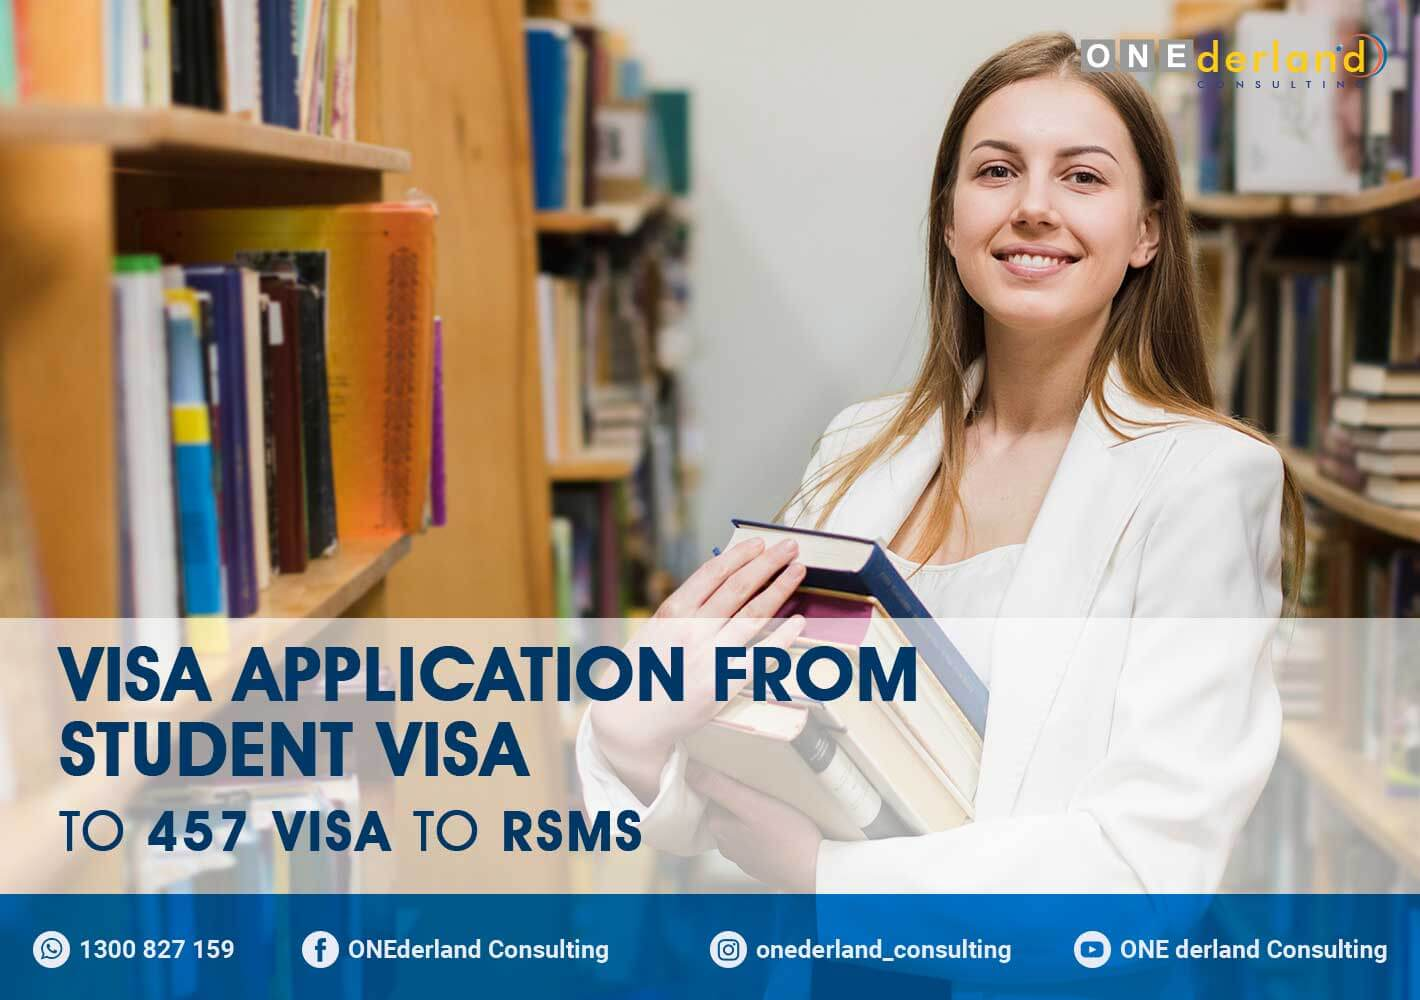 Visa Application from Student Visa to 457 Visa to RSMS